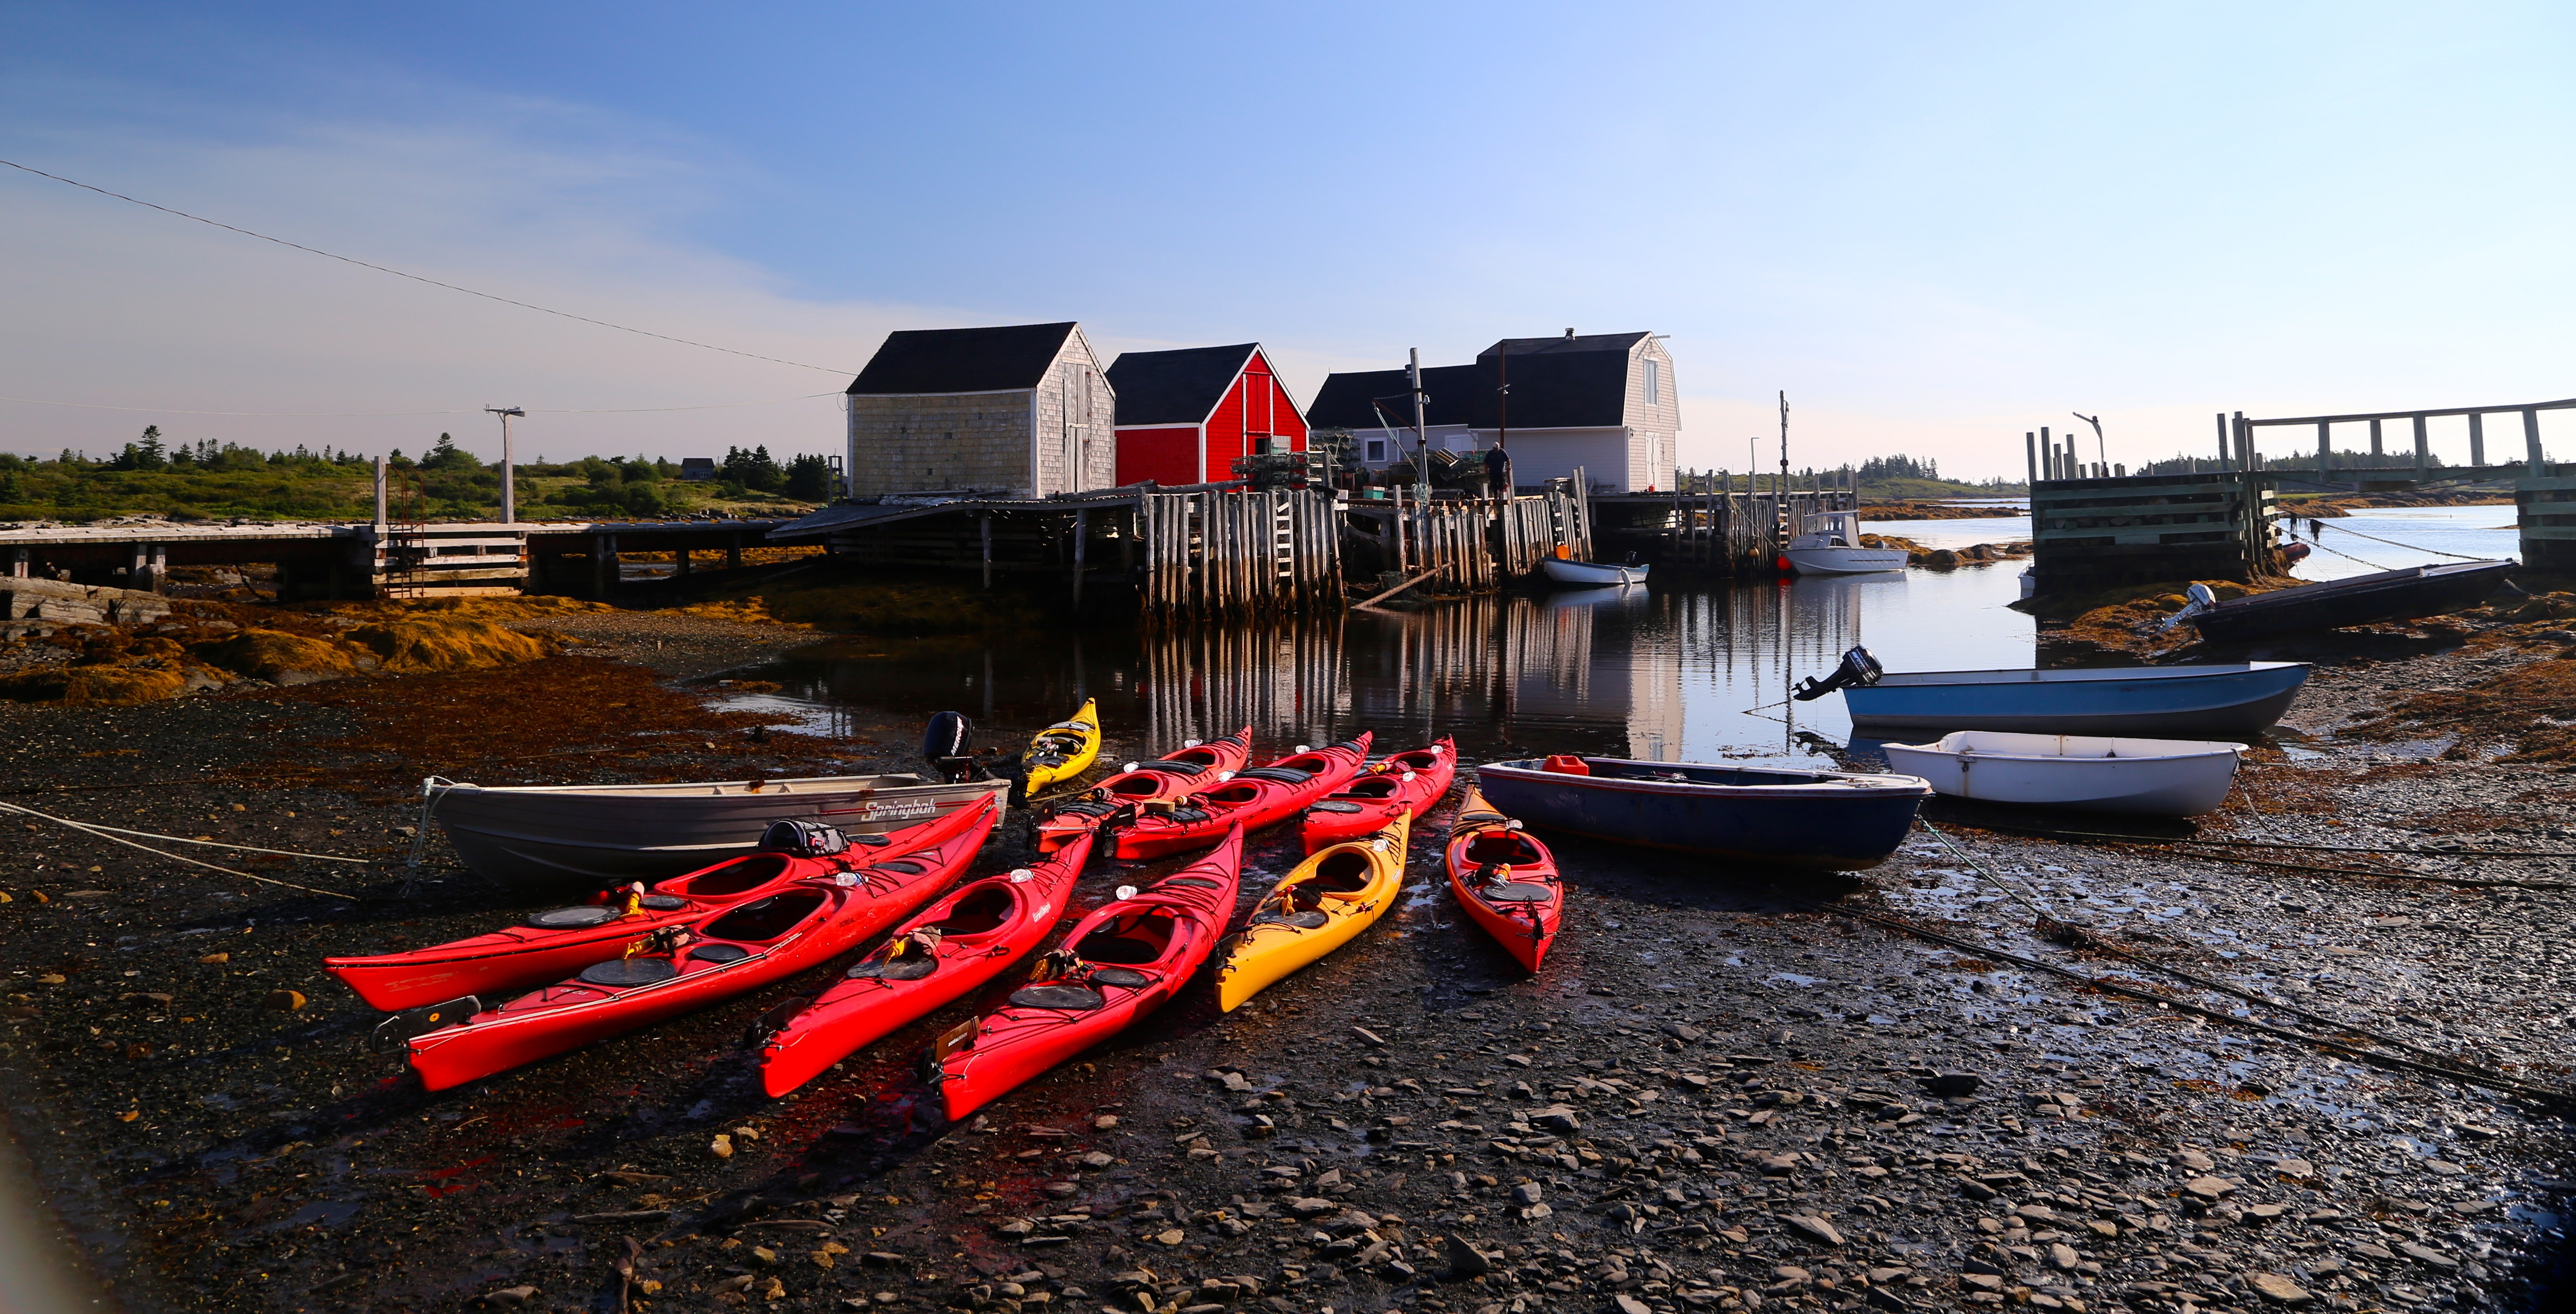 Nova scotia bicycle tour kayaking